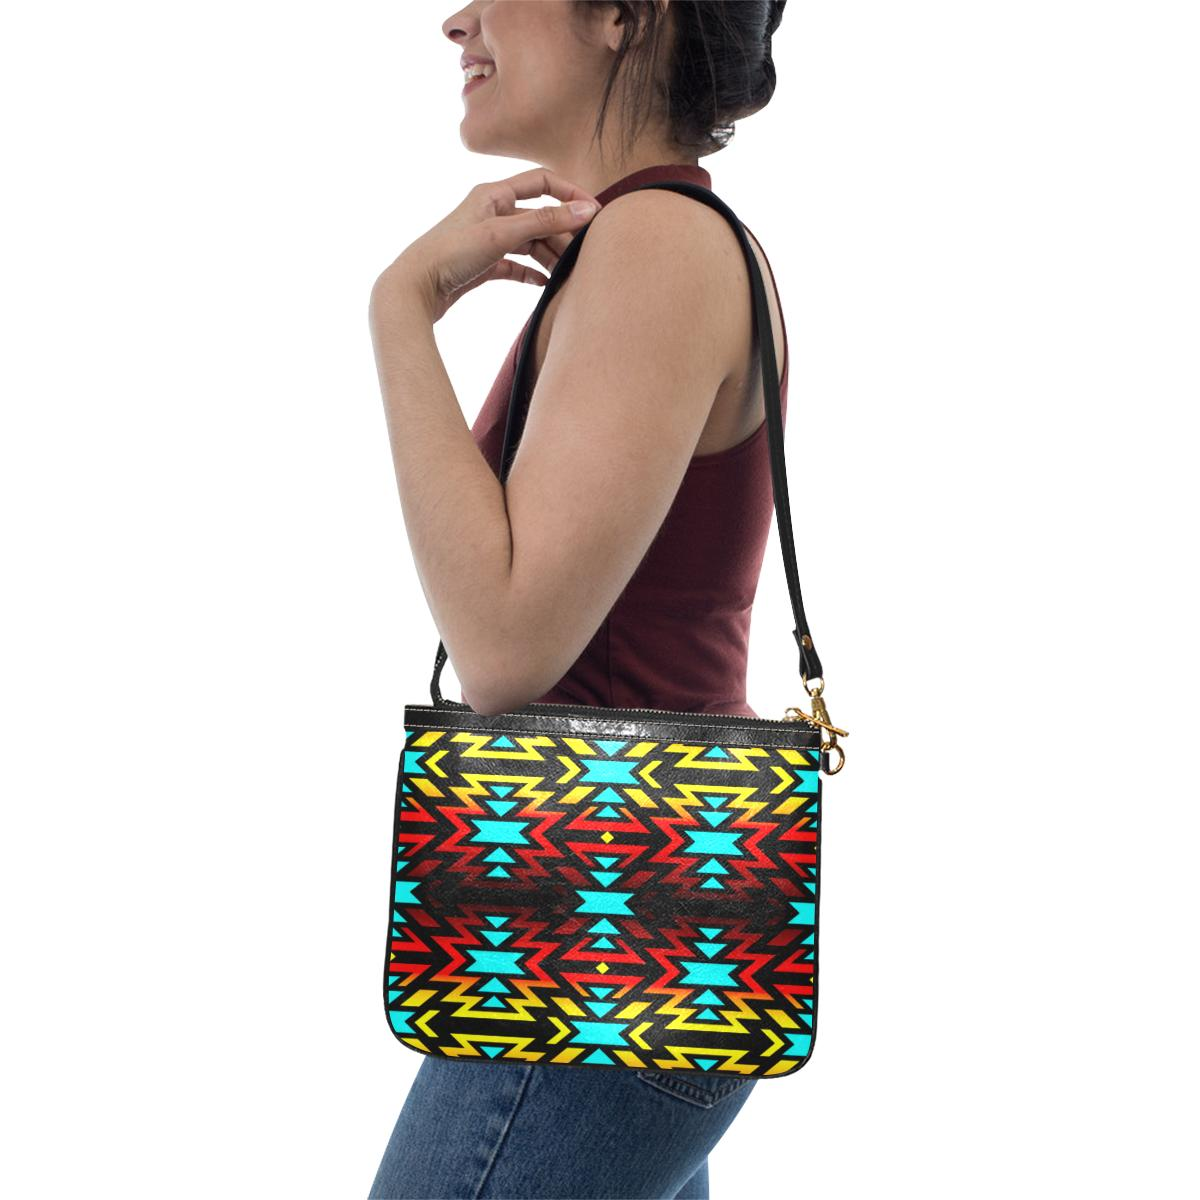 Black Fire and Turquoise Small Shoulder Bag (Model 1710) Small Shoulder Bag (1710) e-joyer